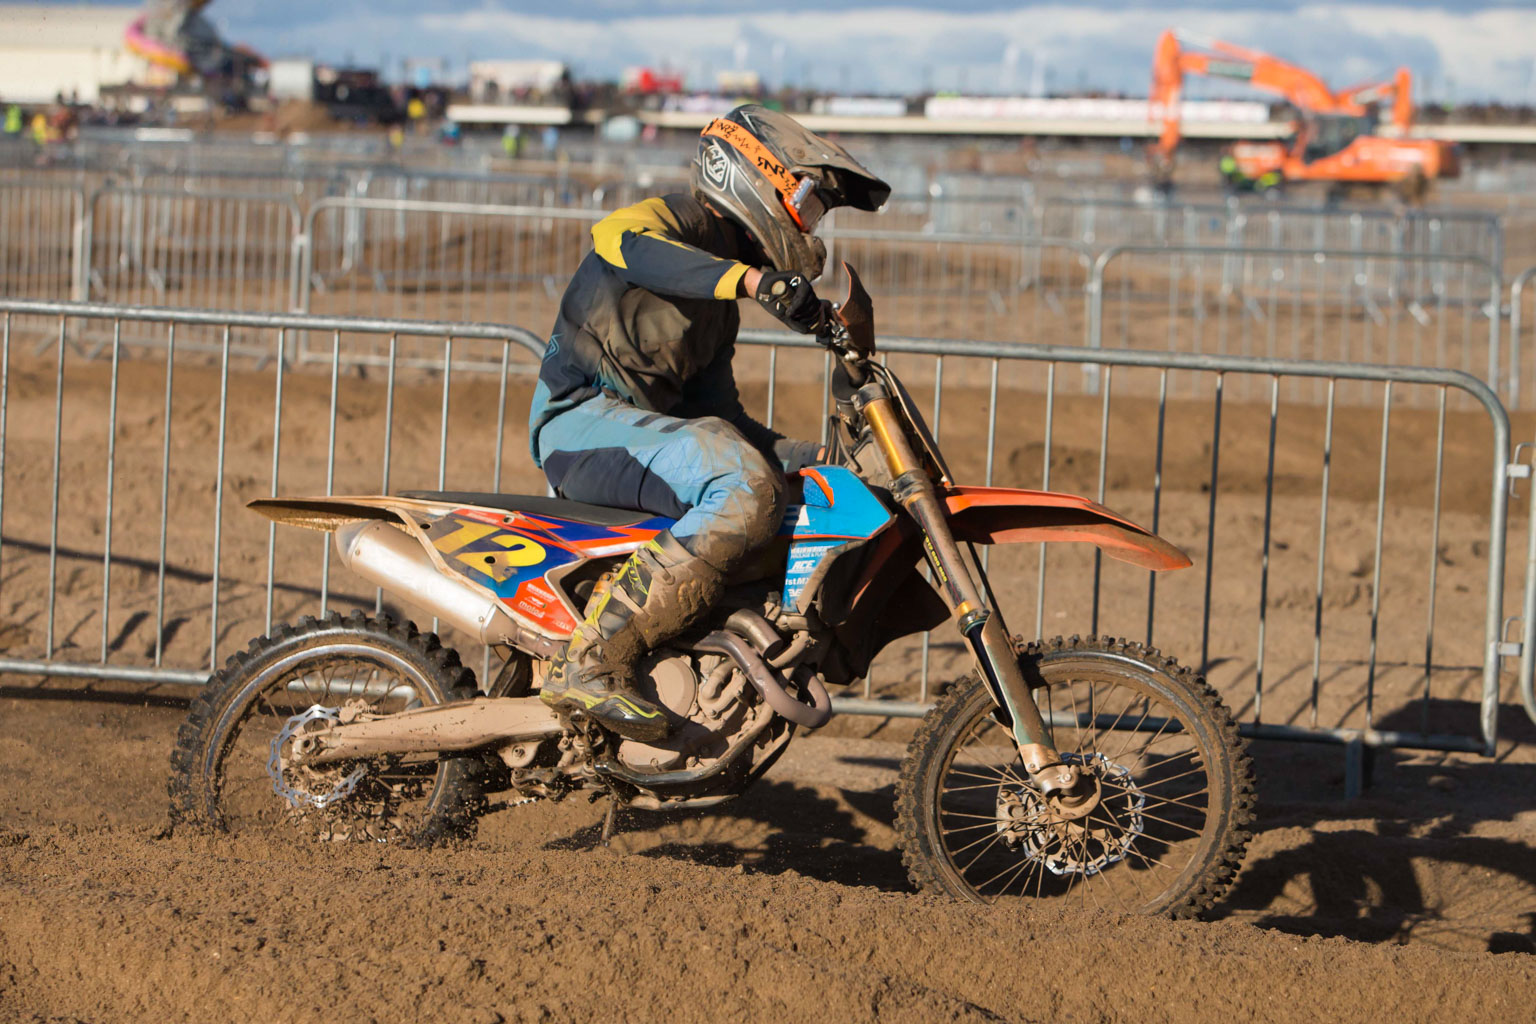 James Wainwright (KTM) on the gas